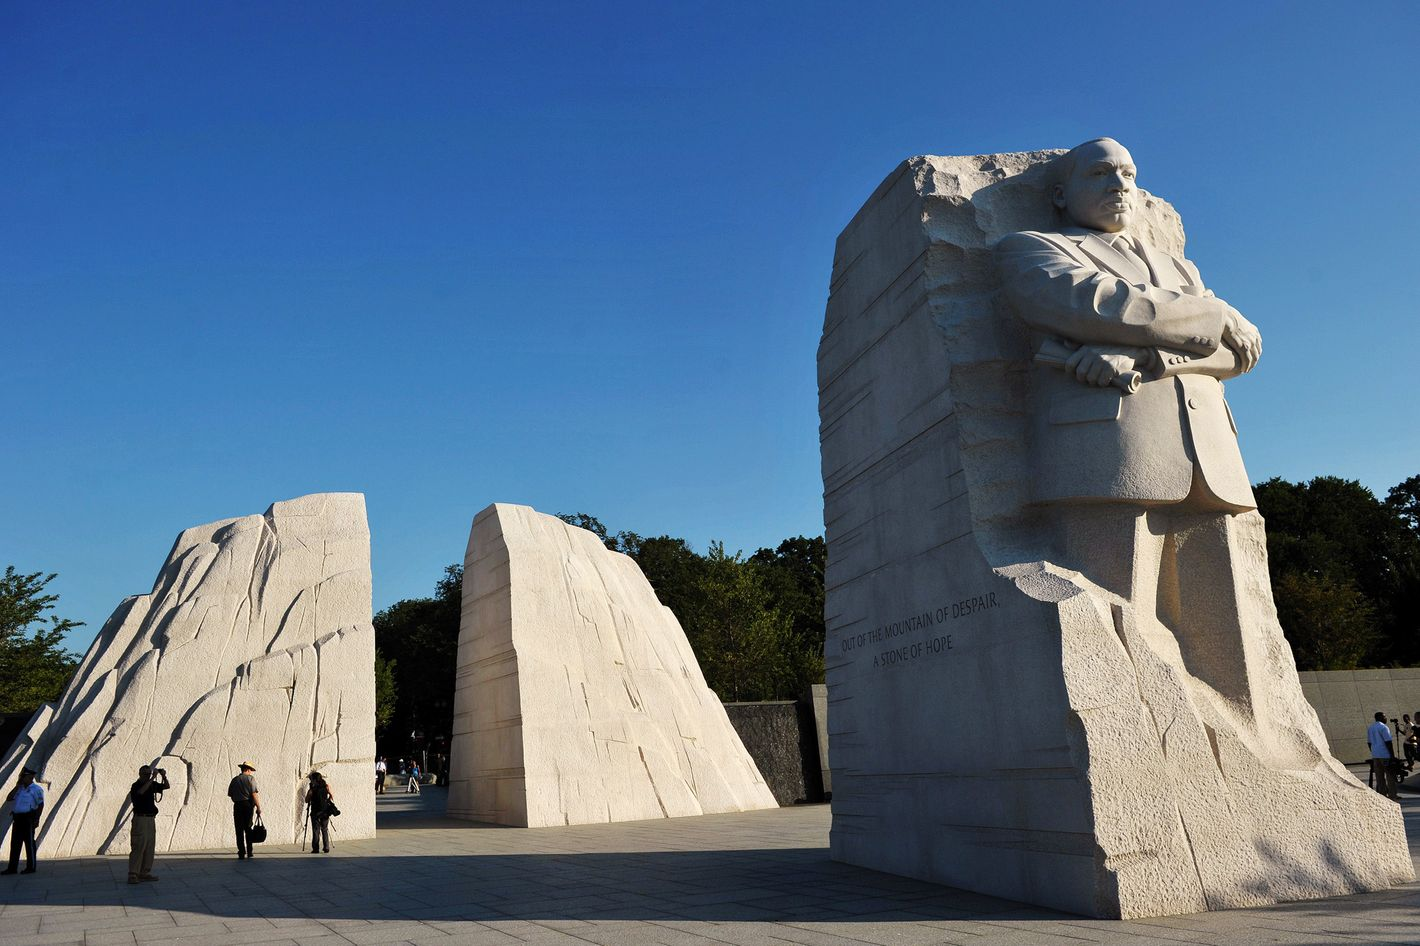 What Do You Think Of The New Mlk Jr Memorial In Washington D C